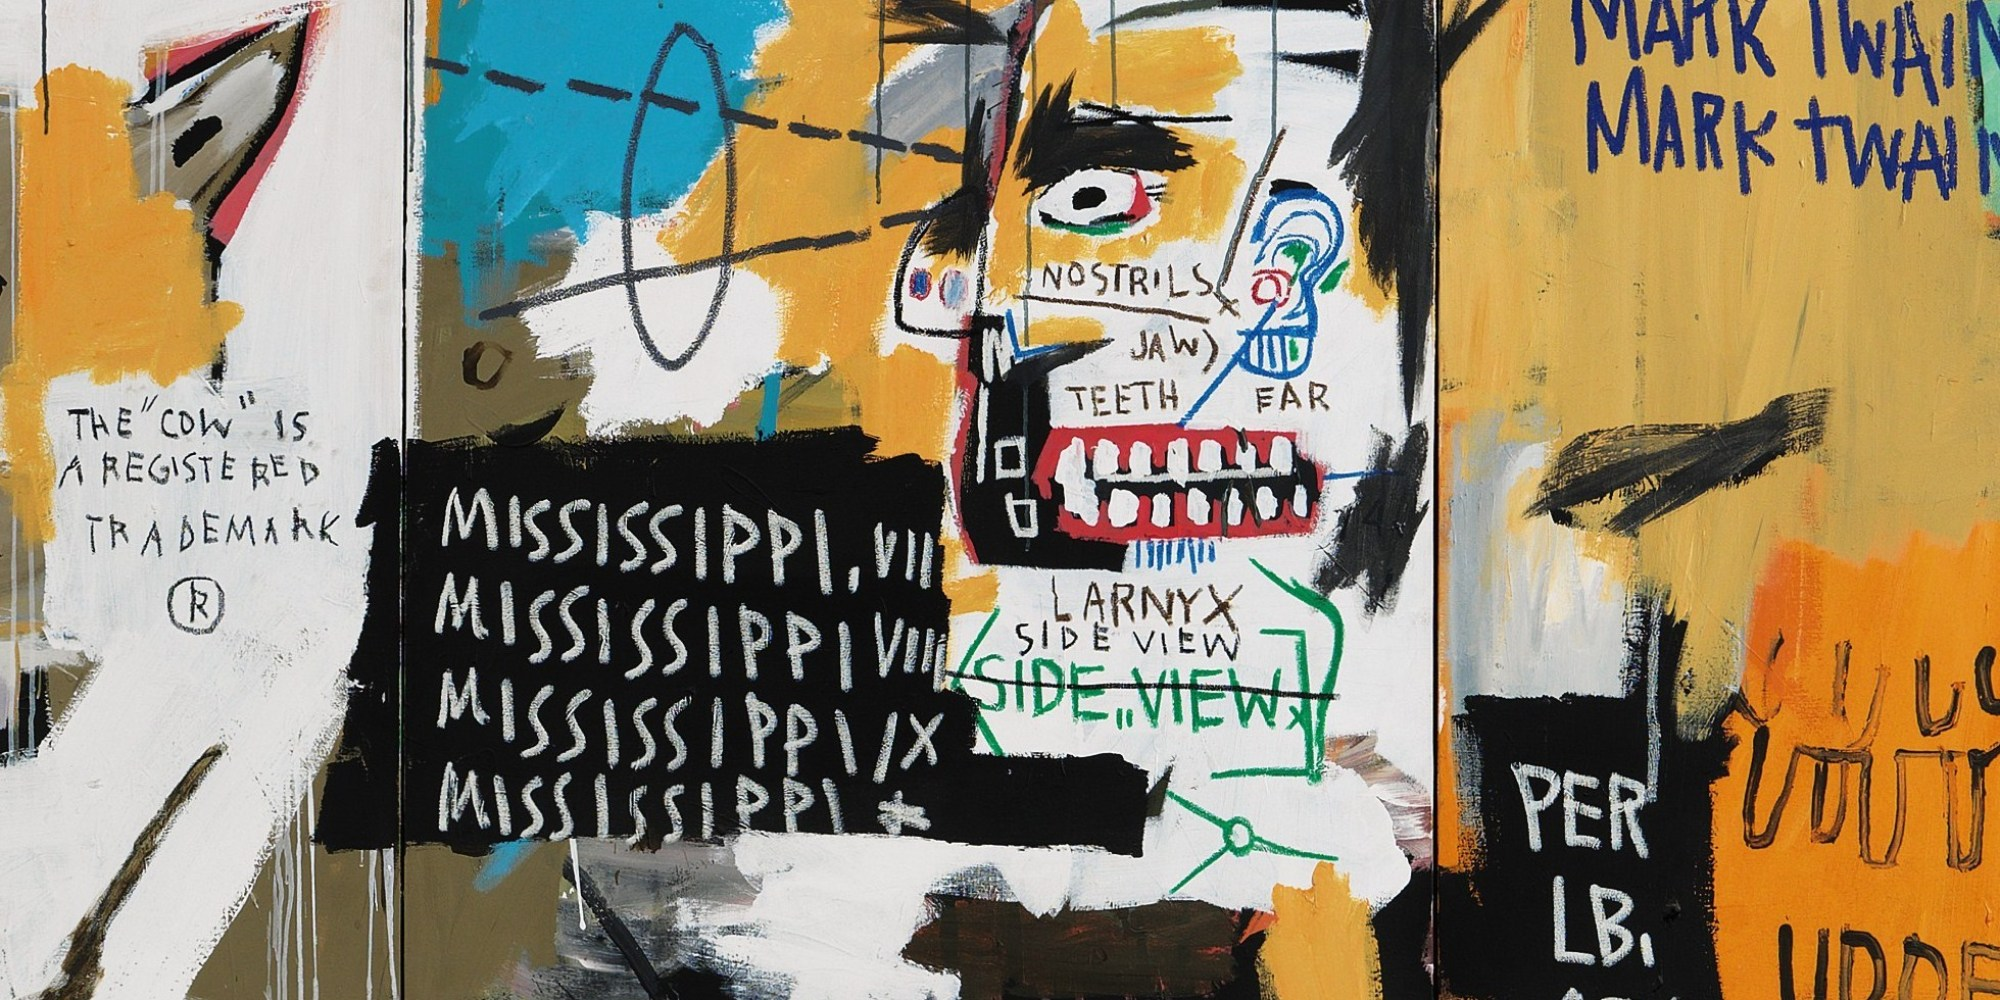 Jean michel basquiat creates his own racial history in jean michel basquiat creates his own racial history in undiscovered genius of the mississippi delta huffpost buycottarizona Gallery